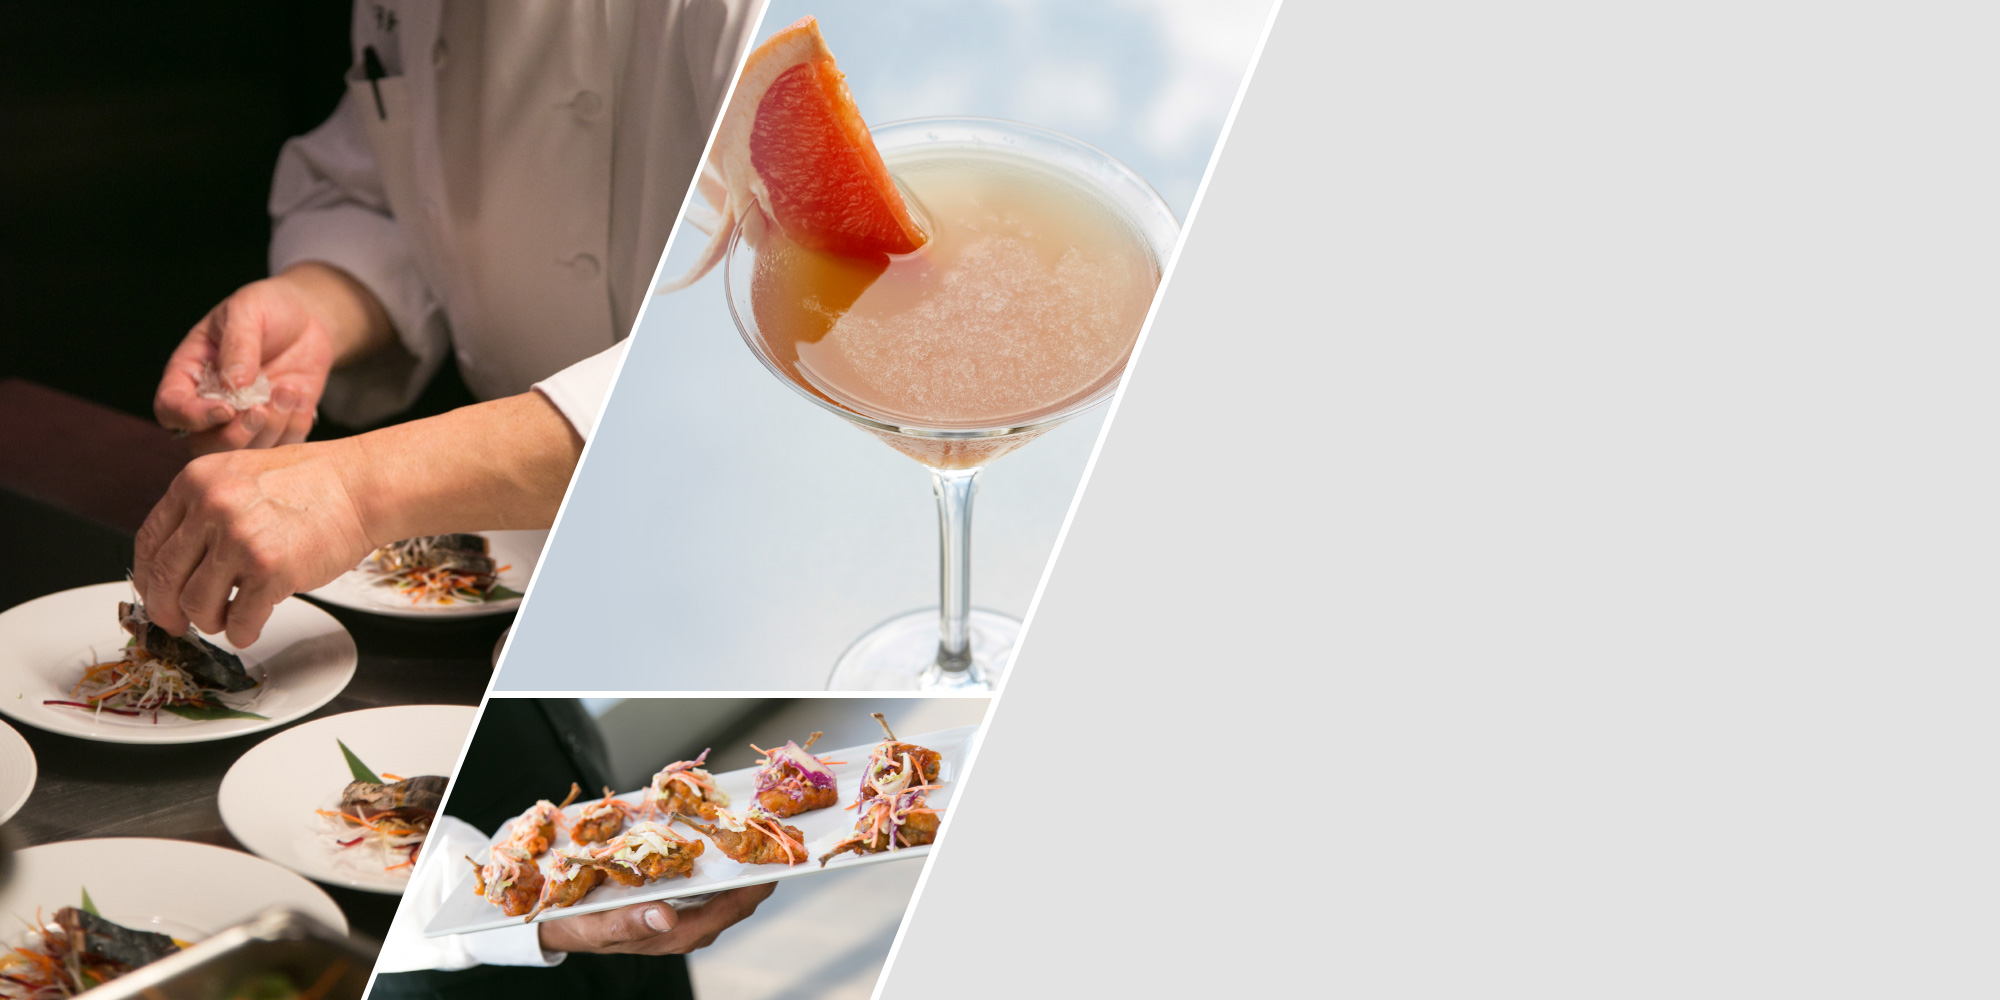 Five Sixty exclusive catering menu by Wolfgang Puck